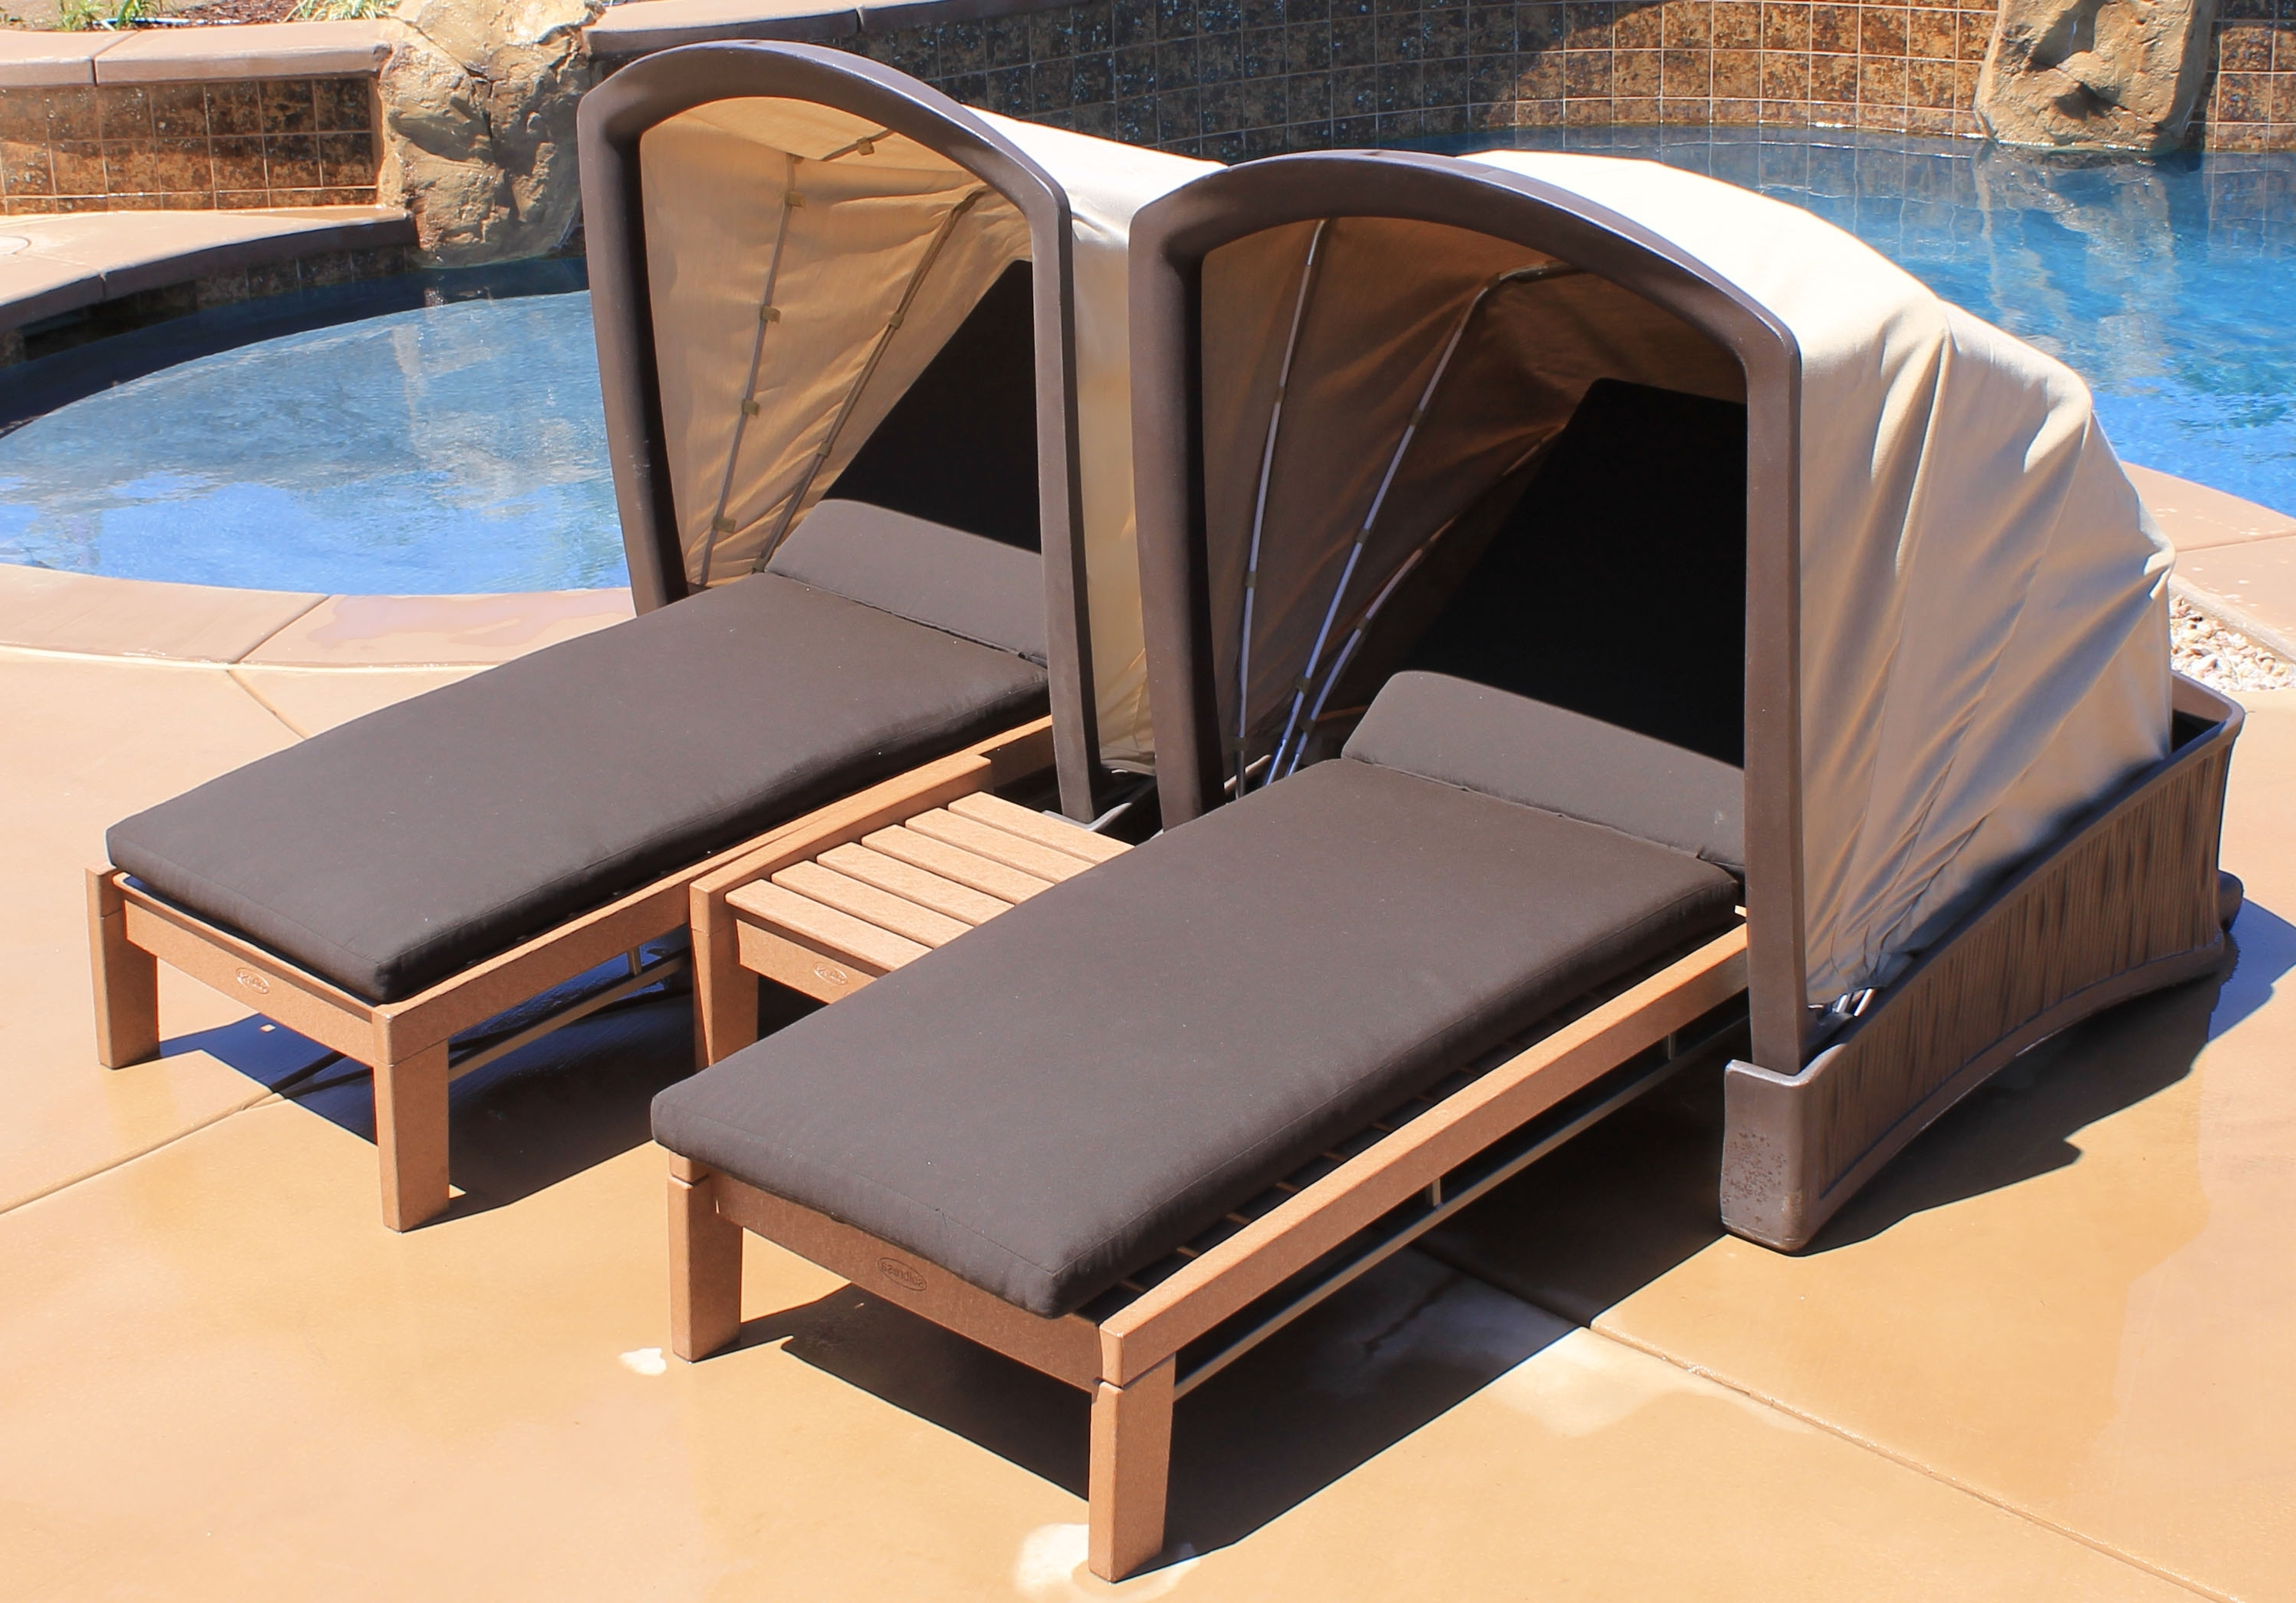 Hotel Outdoor Lounge Chairs • Lounge Chairs Ideas In Trendy Hotel Pool Chaise Lounge Chairs (View 7 of 15)